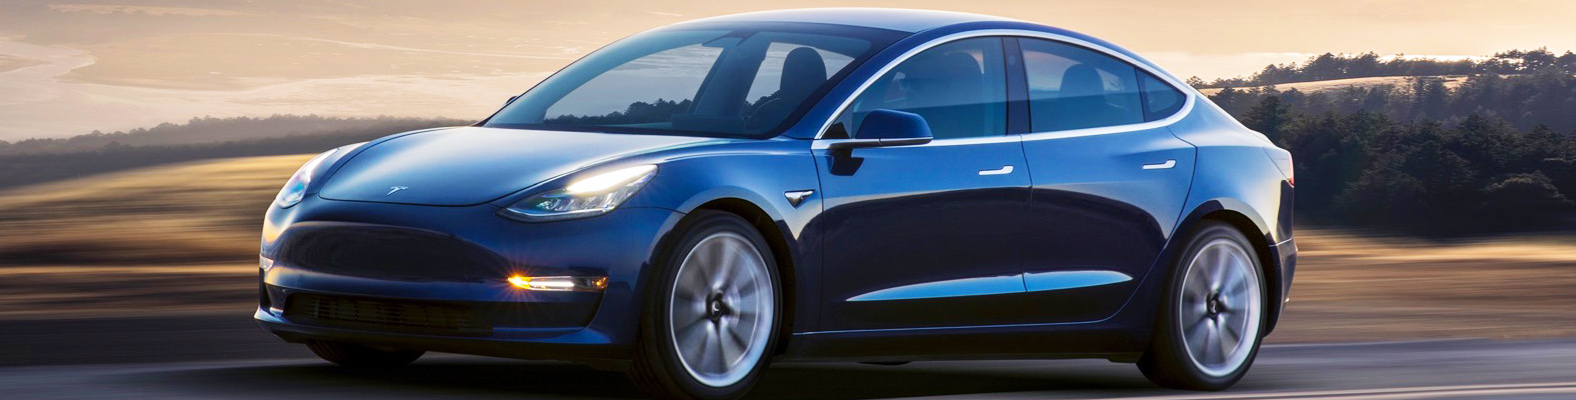 the tesla model 3 is now on the road here 39 s everything we know inhabitat green design. Black Bedroom Furniture Sets. Home Design Ideas